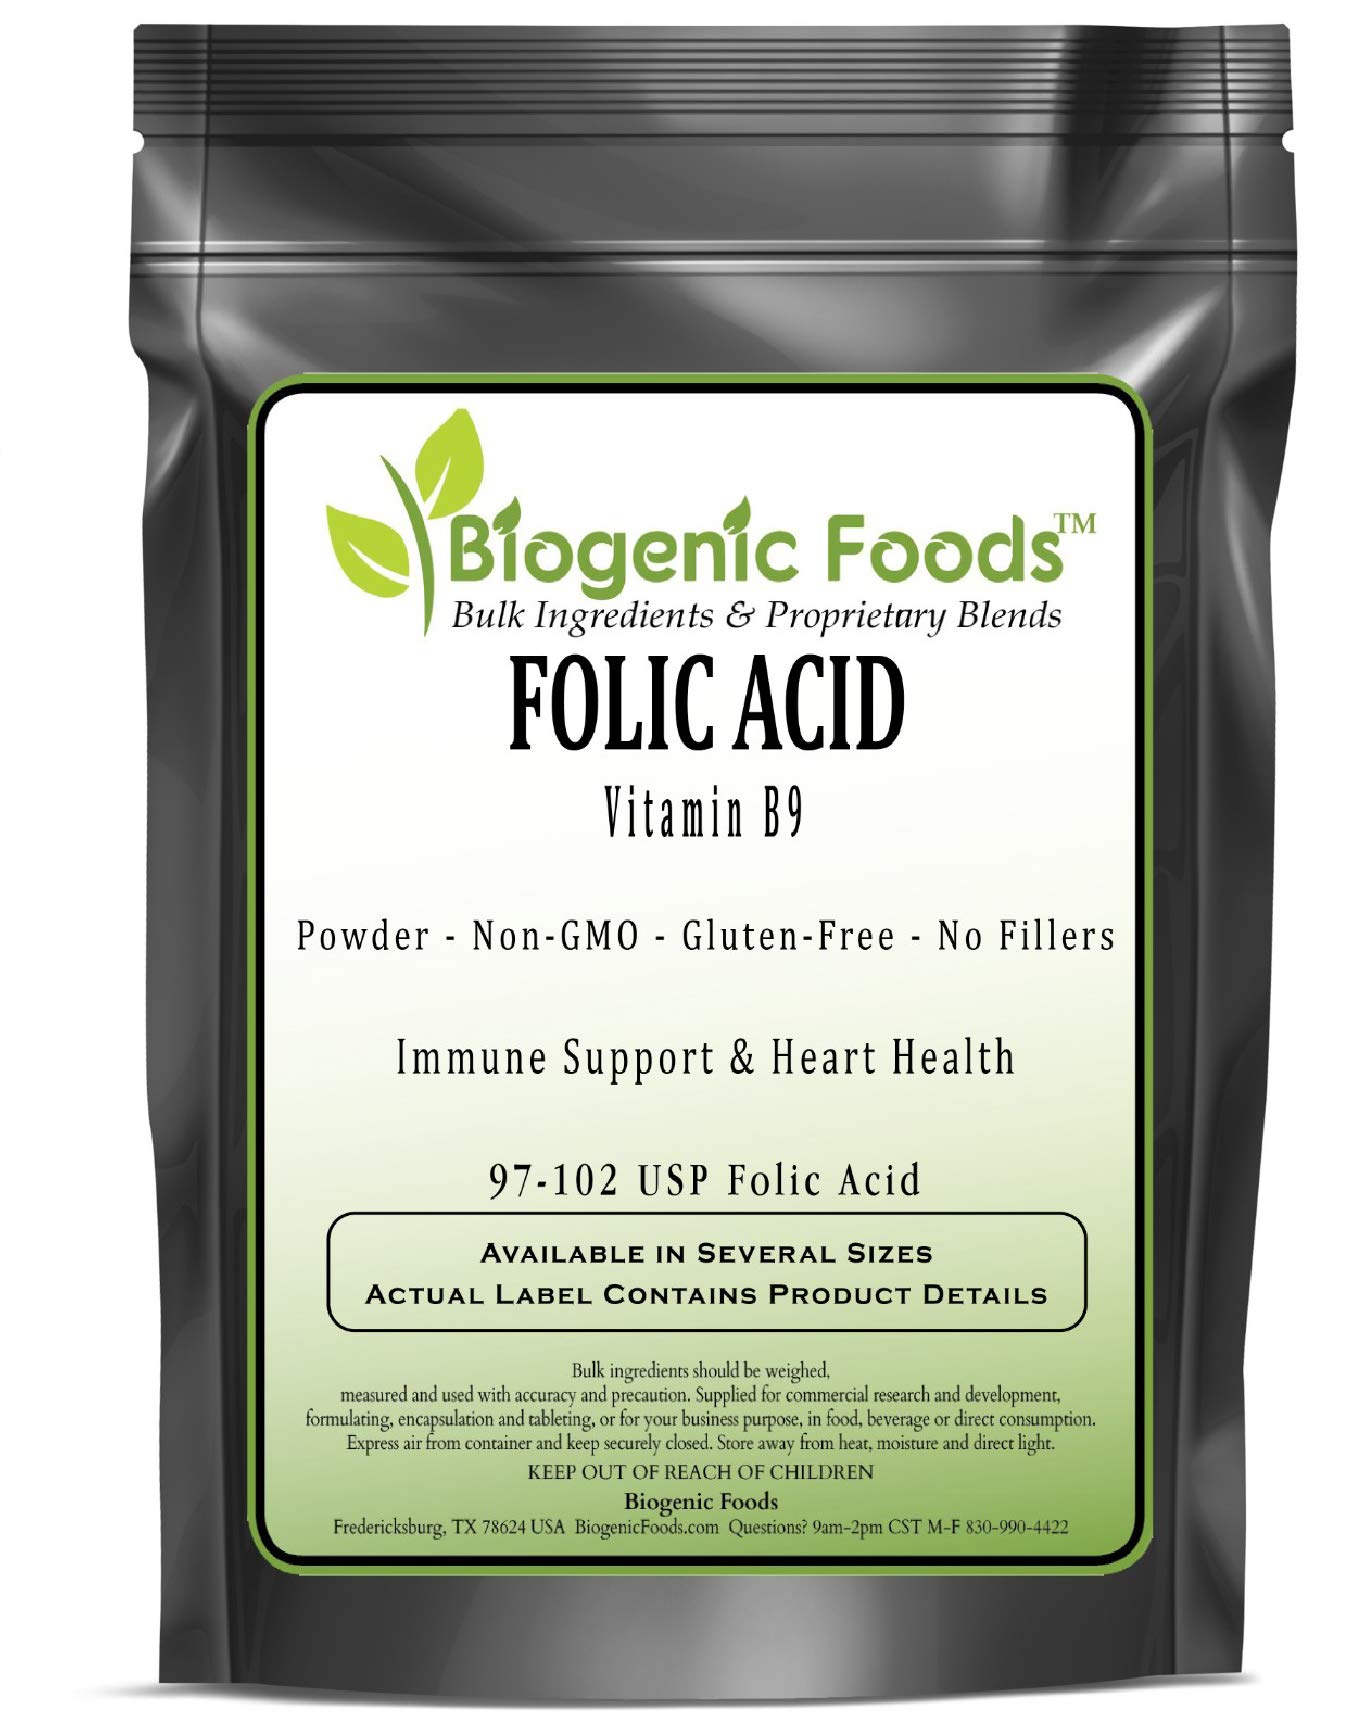 Folic Acid - Vitamin B9 Powder (97-102 USP Folic Acid), 2 kg